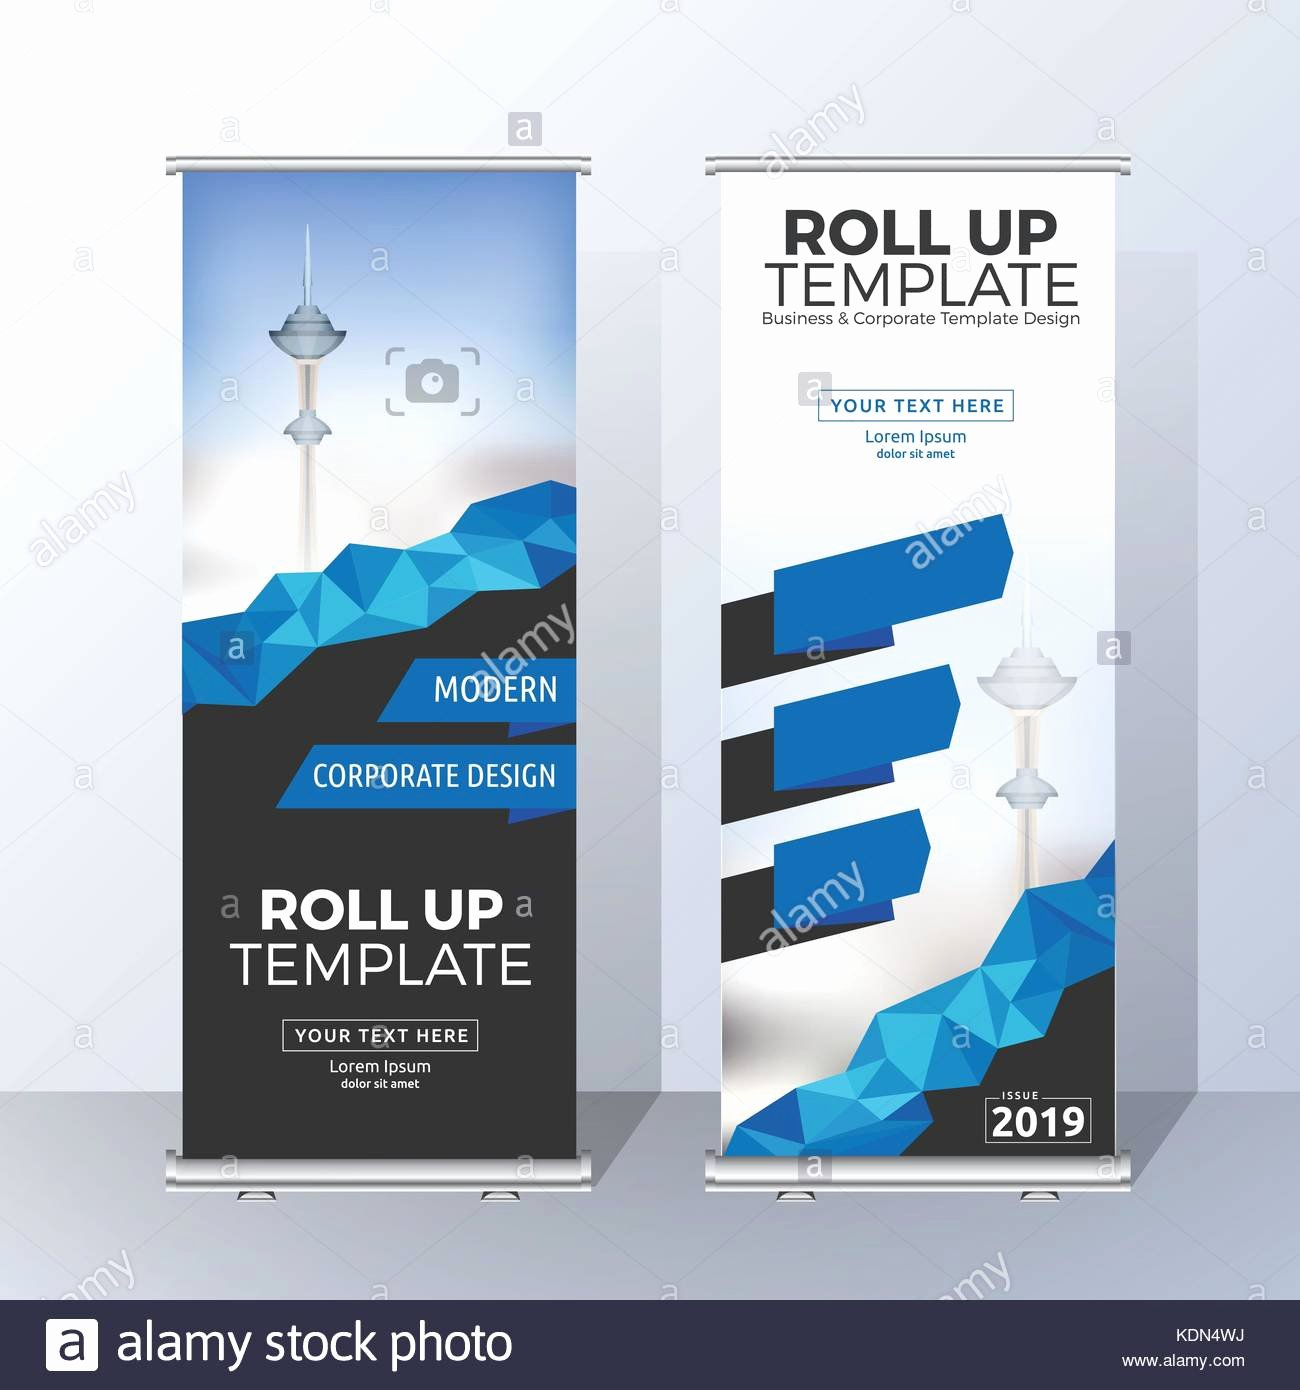 Roll Up Banners Template Inspirational Vertical Roll Up Banner Template Design for Announce and